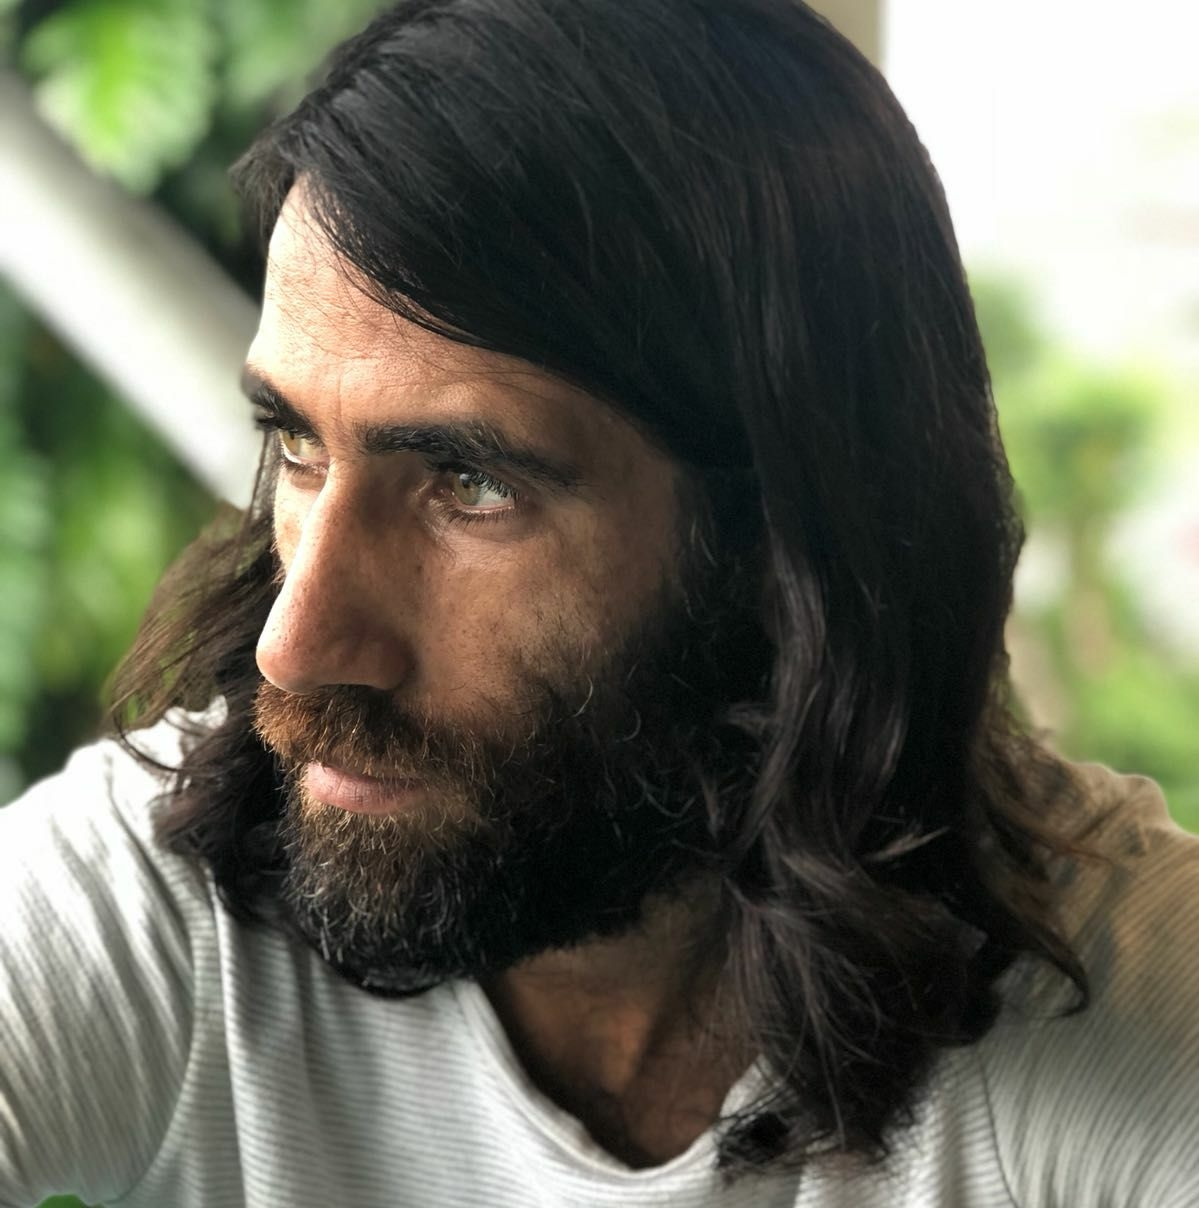 Behrouz Boochani. Photo by Hoda Afshar, Facebook